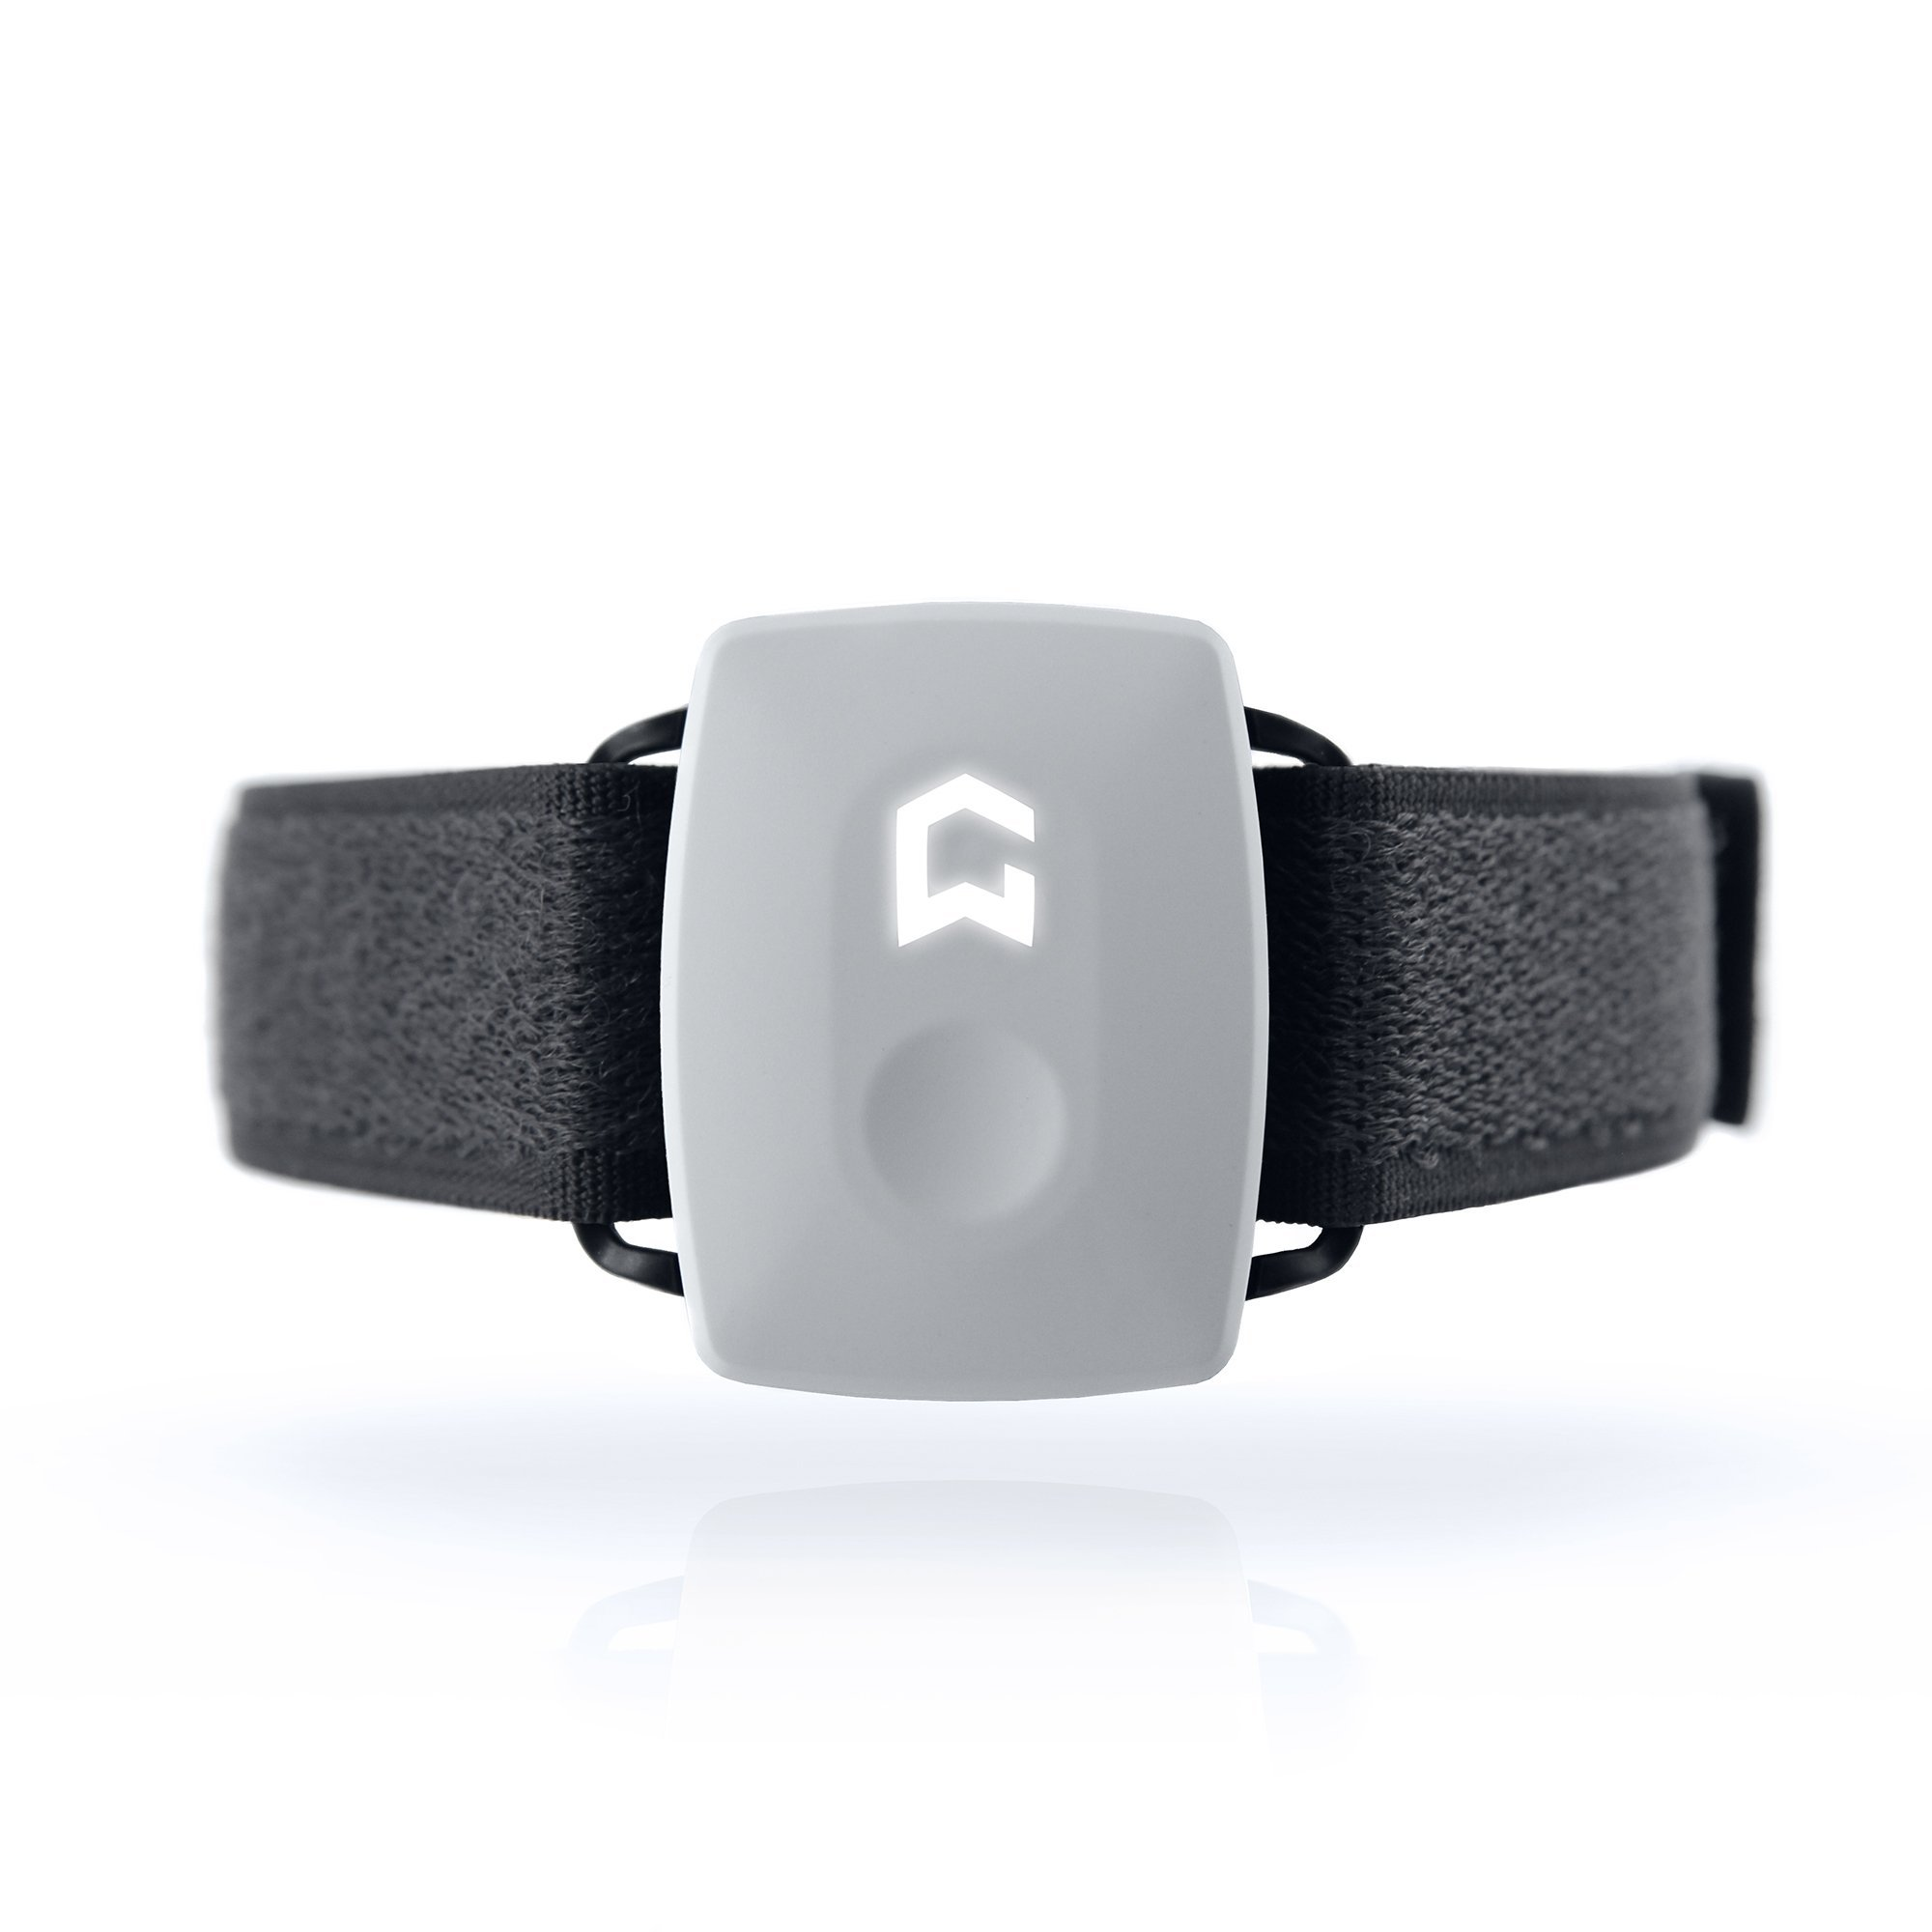 Ultimate Fitness Exercise Tracker Watch That Monitors All Workout and Sports Activity - by GYMWATCH® (Cool White) by GYMWATCH®